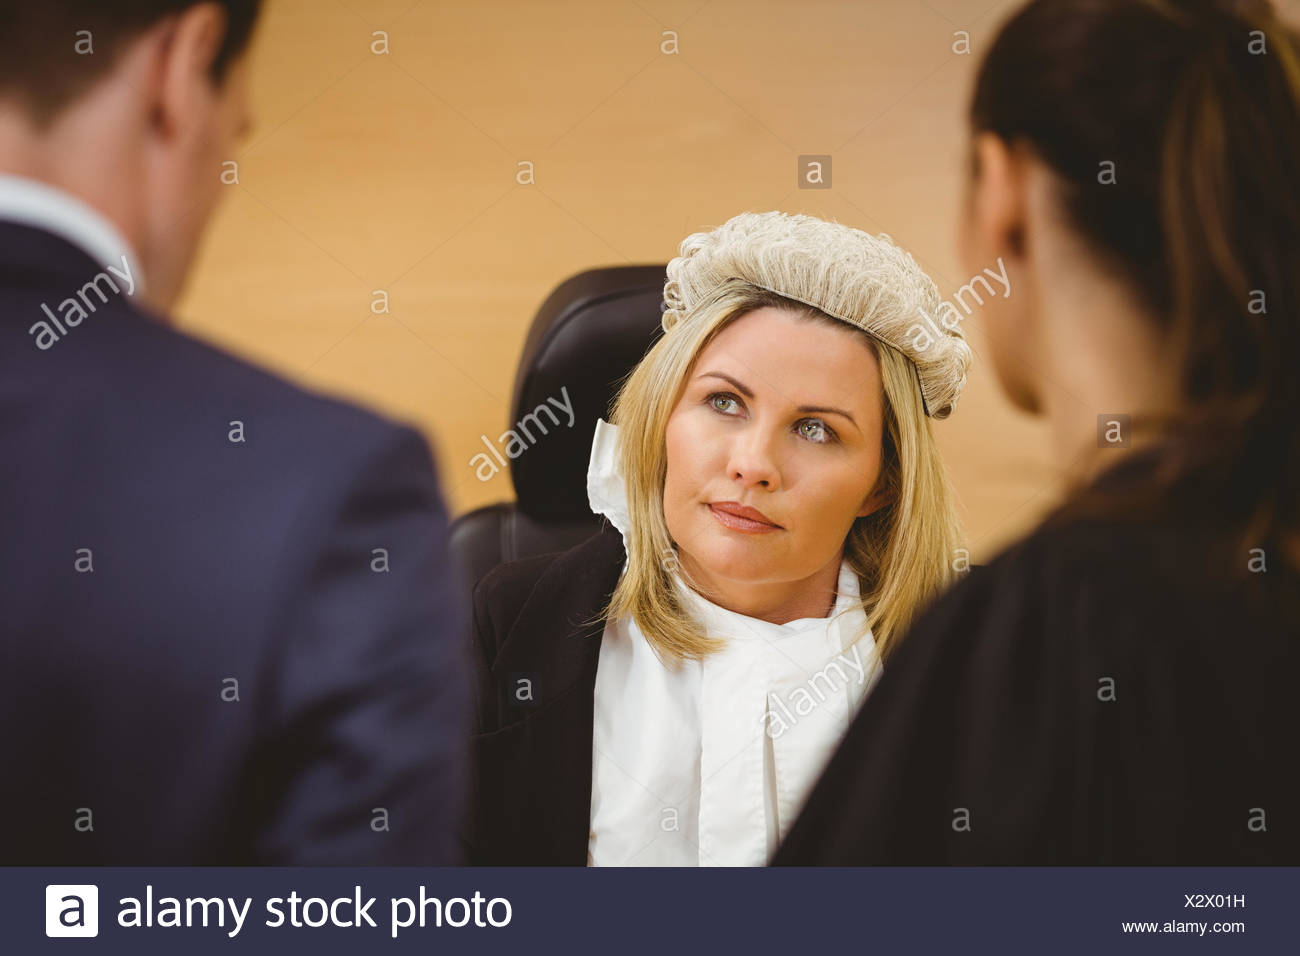 Judge and lawyer listening the criminal in handcuffs - Stock Image